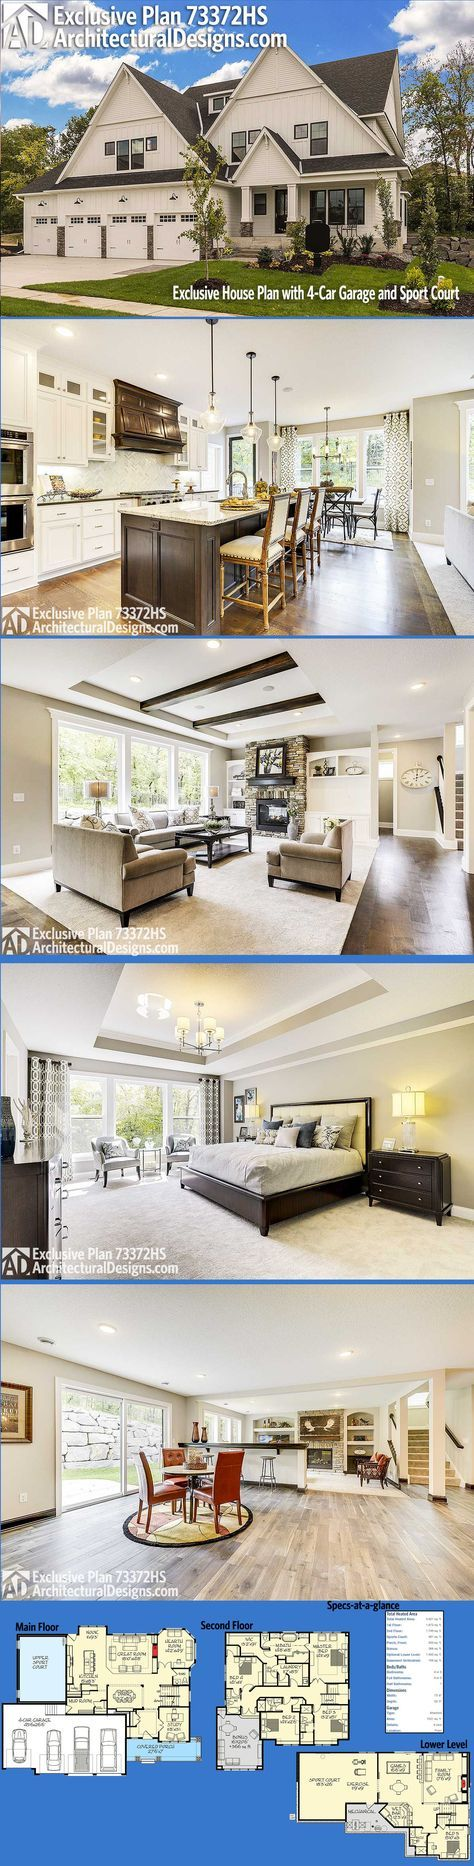 master bedroom additions over garage%0A Architectural Designs Exclusive House Plan      HS gives you   bedrooms on  the top floor and over